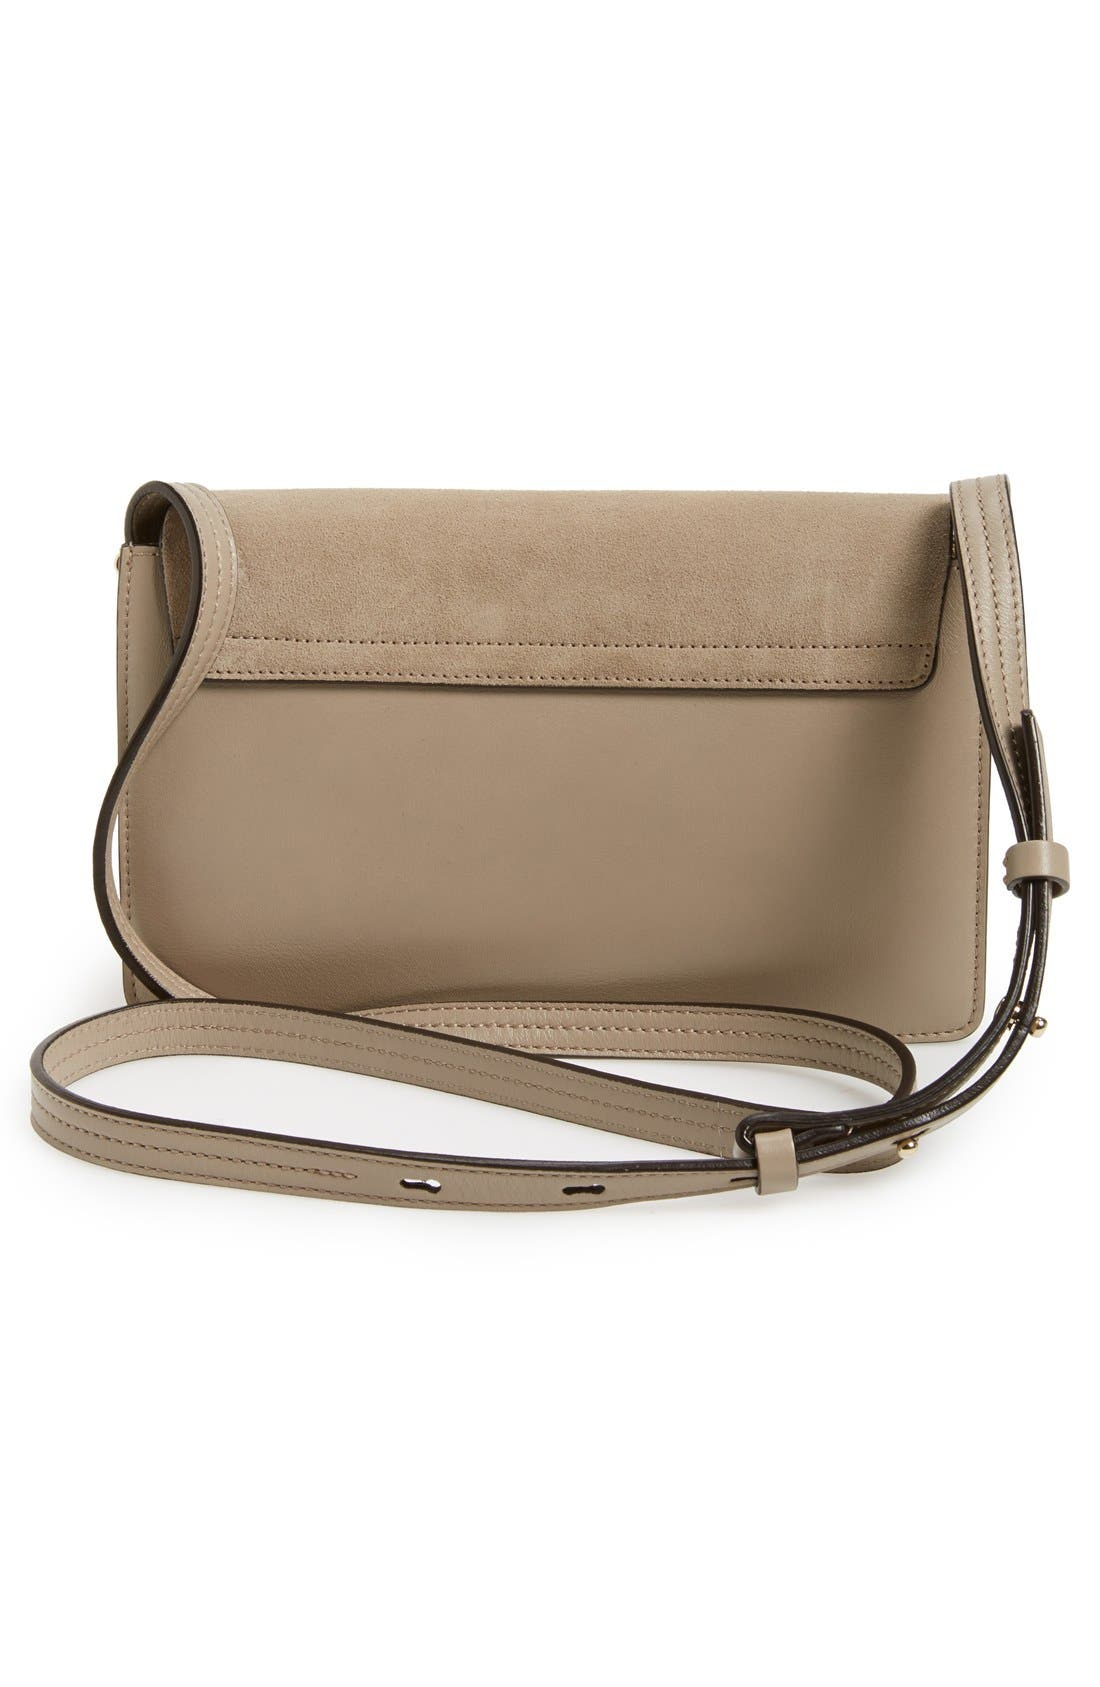 CHLOÉ, Small Faye Leather Shoulder Bag, Alternate thumbnail 3, color, MOTTY GREY